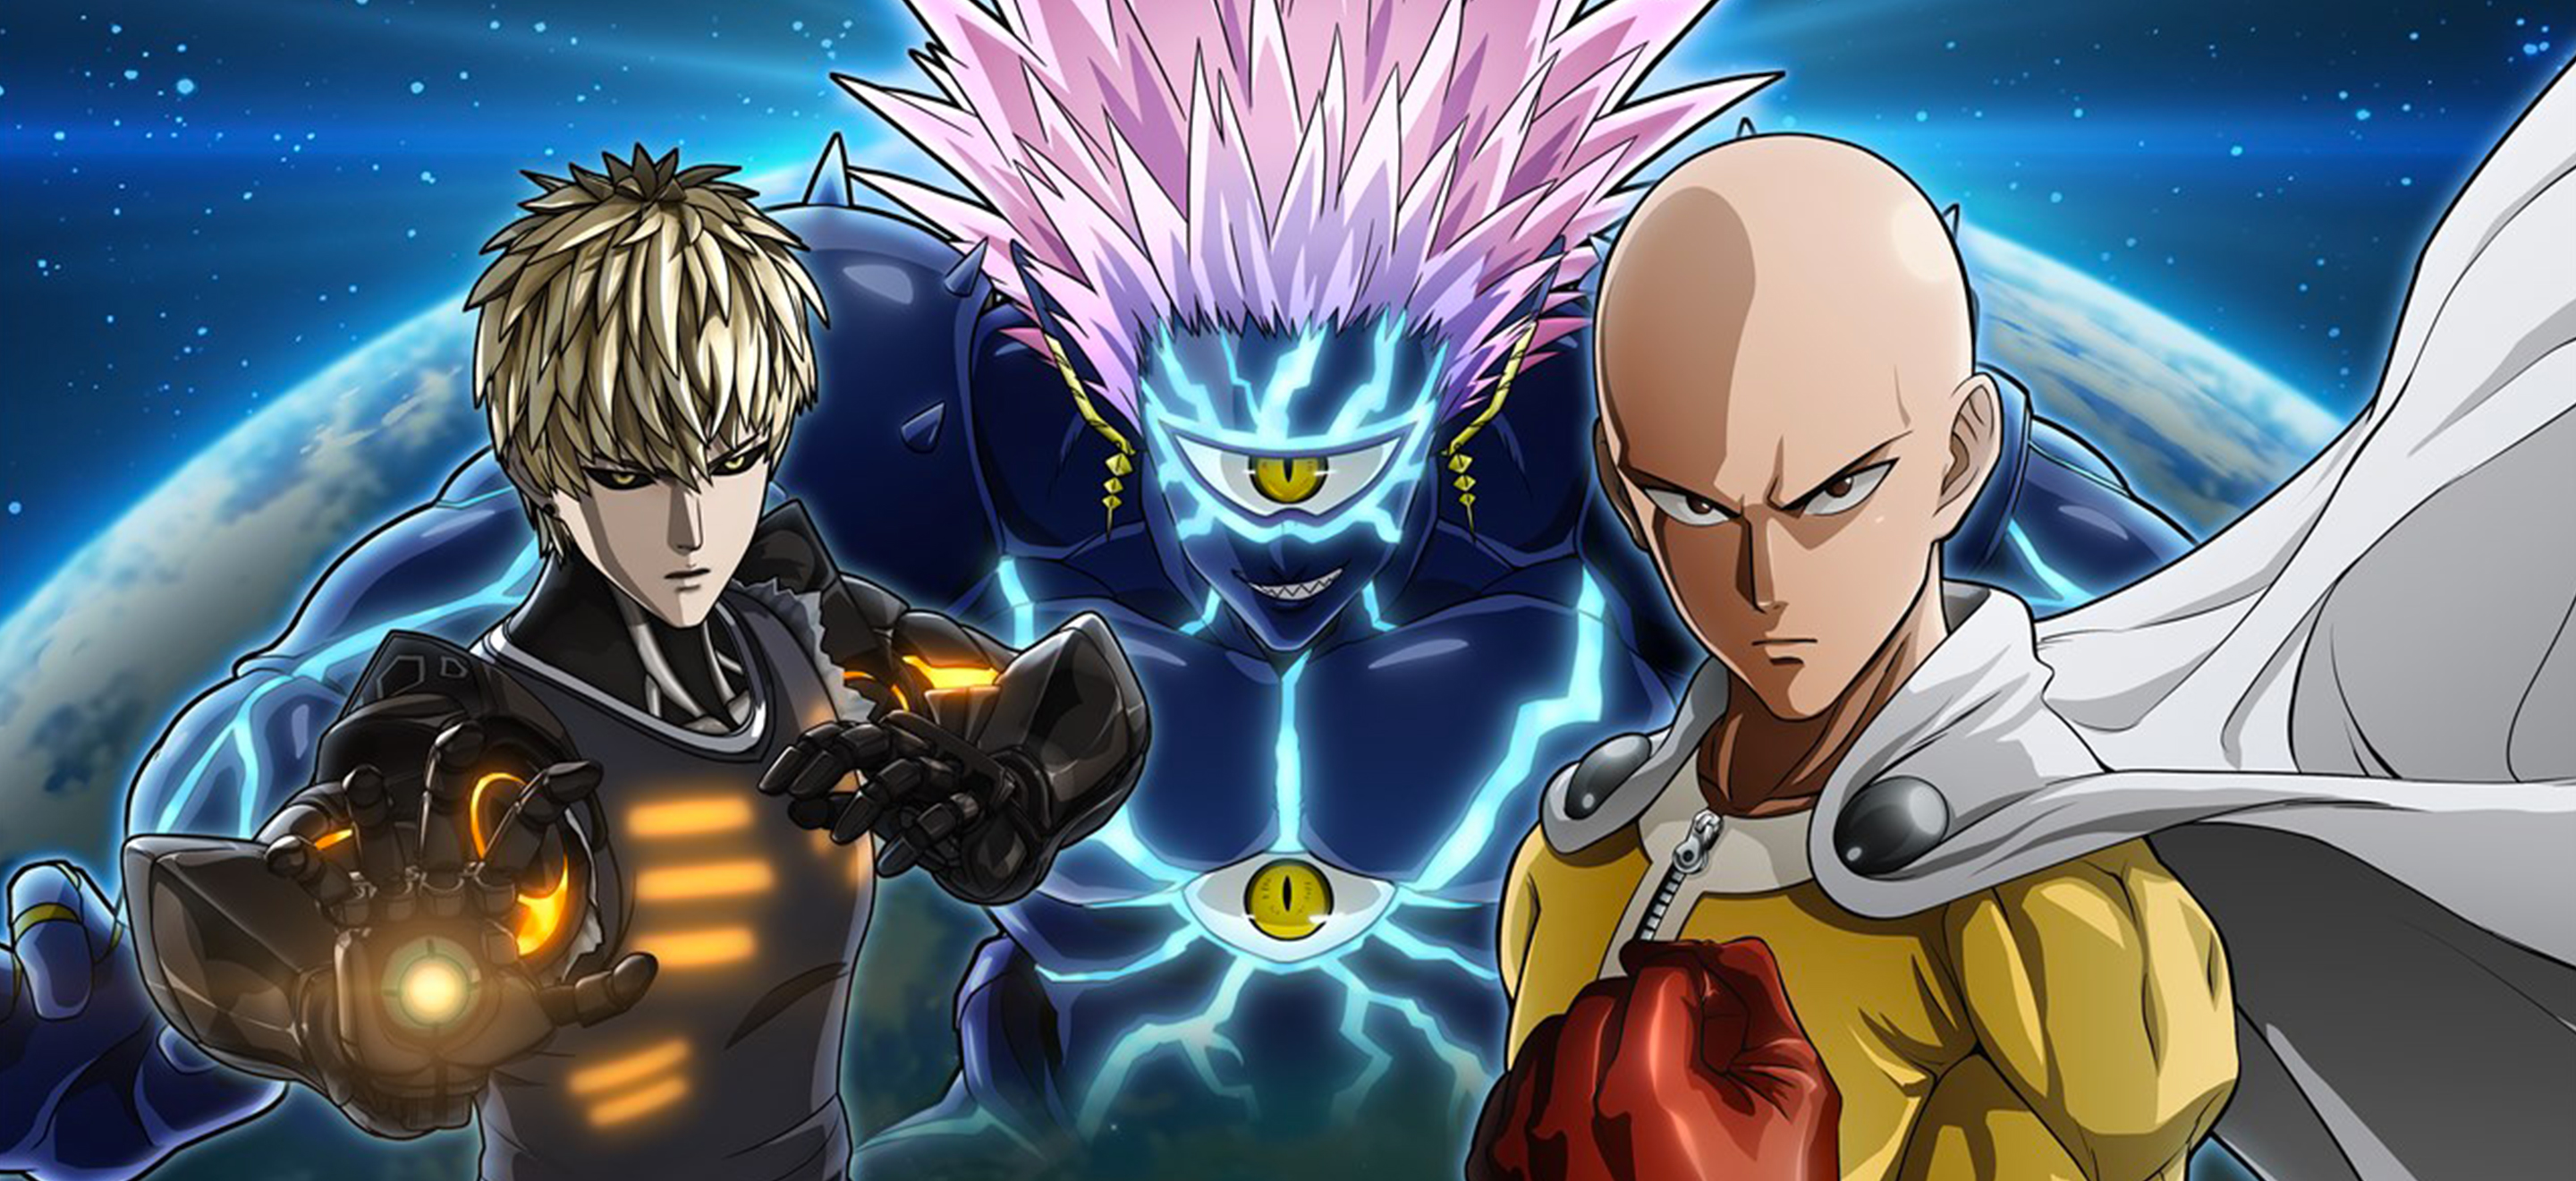 https://www.micromania.fr/on/demandware.static/-/Sites-Micromania-Library/default/dw473f2b1c/fanzone/dossier/onepunchman/onepunchman-cover.jpg